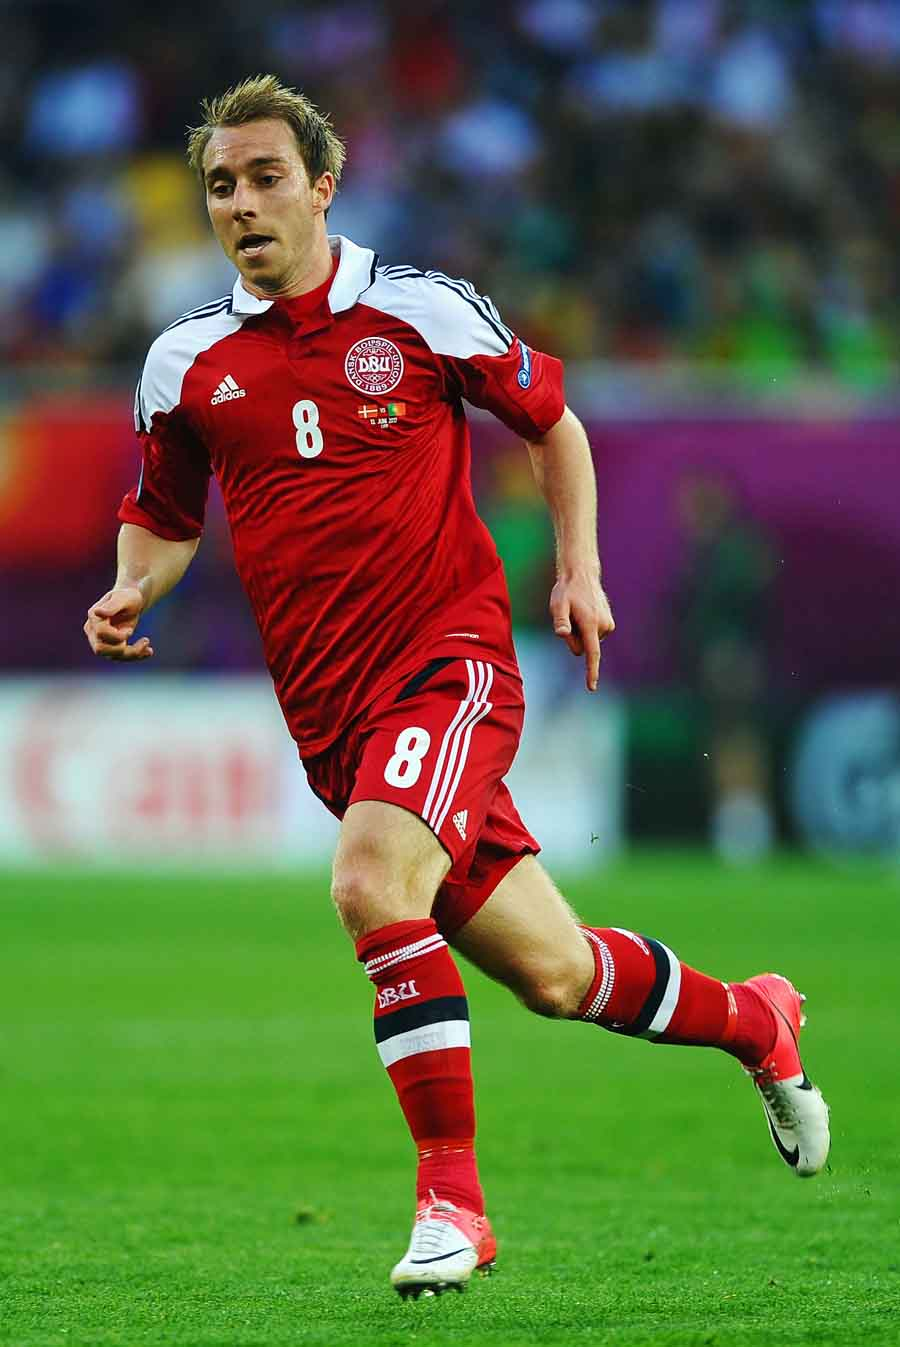 Christian Eriksen of Denmark in action against Portugal